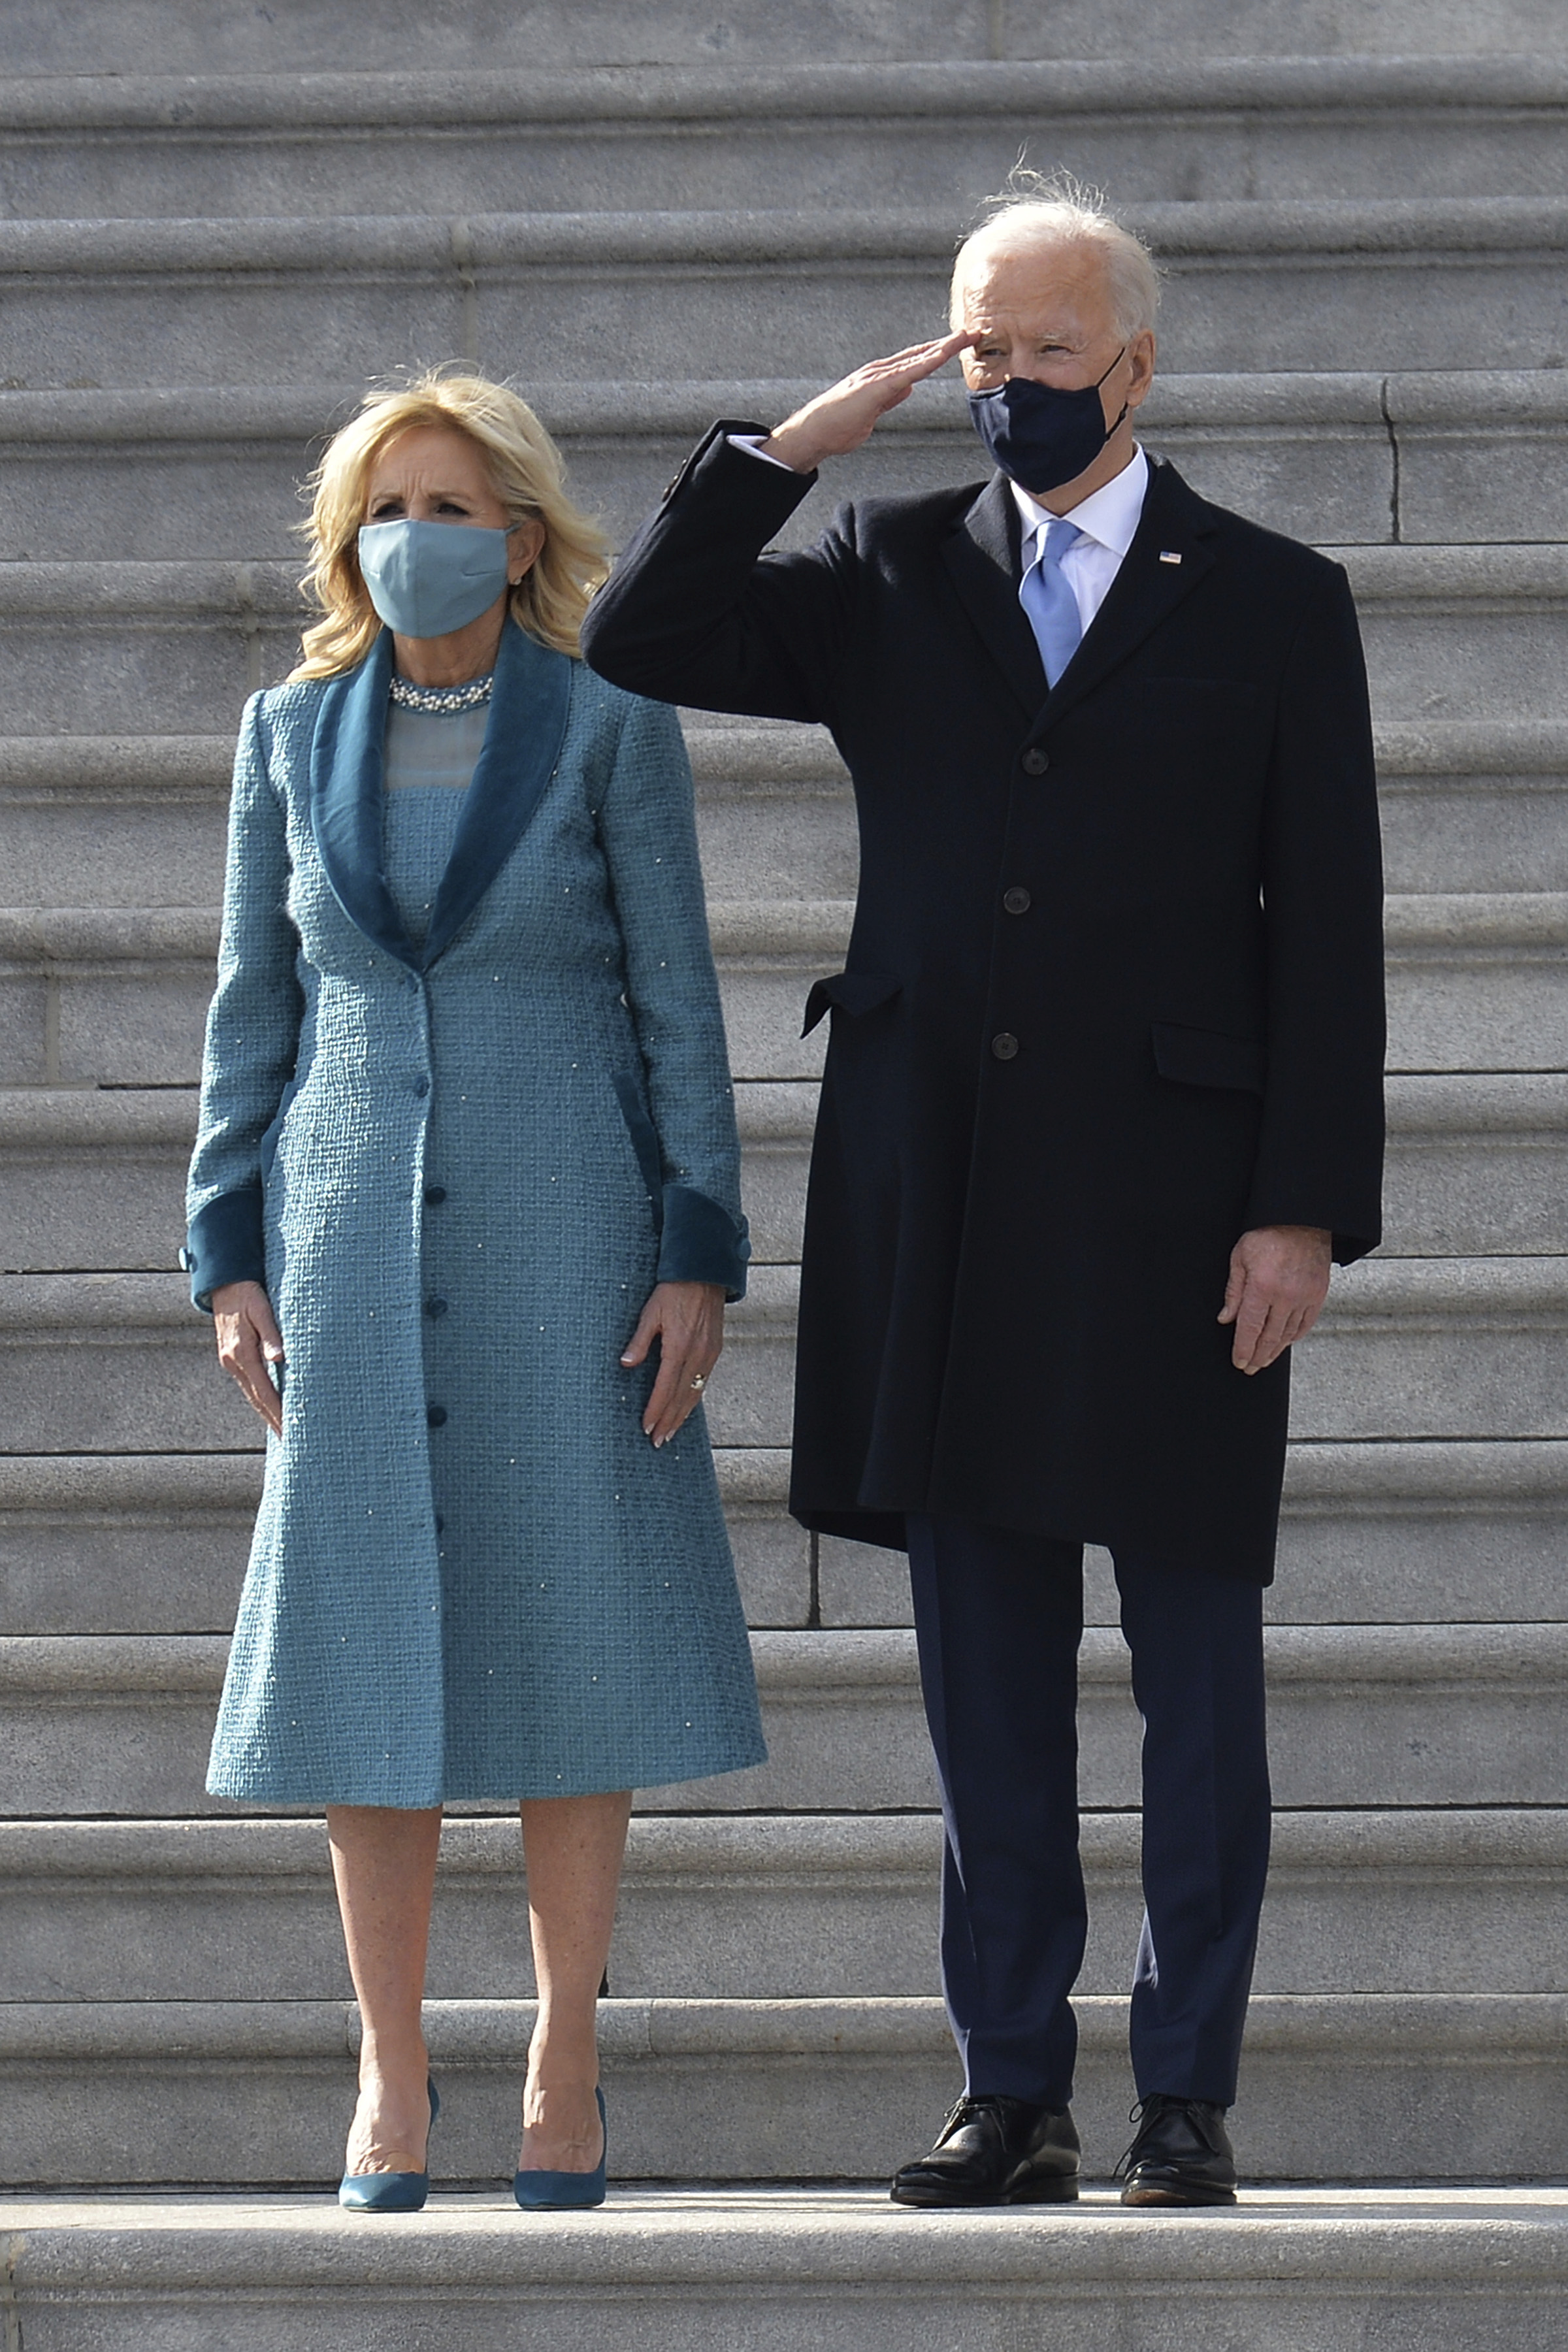 First Lady Jill Biden and President Joe Biden President Joe Biden exit the Inauguration Day ceremony of President-Elect Joe Biden and Vice President-Elect Kamala Harris held at the U.S. Capitol Building in Washington, D.C.